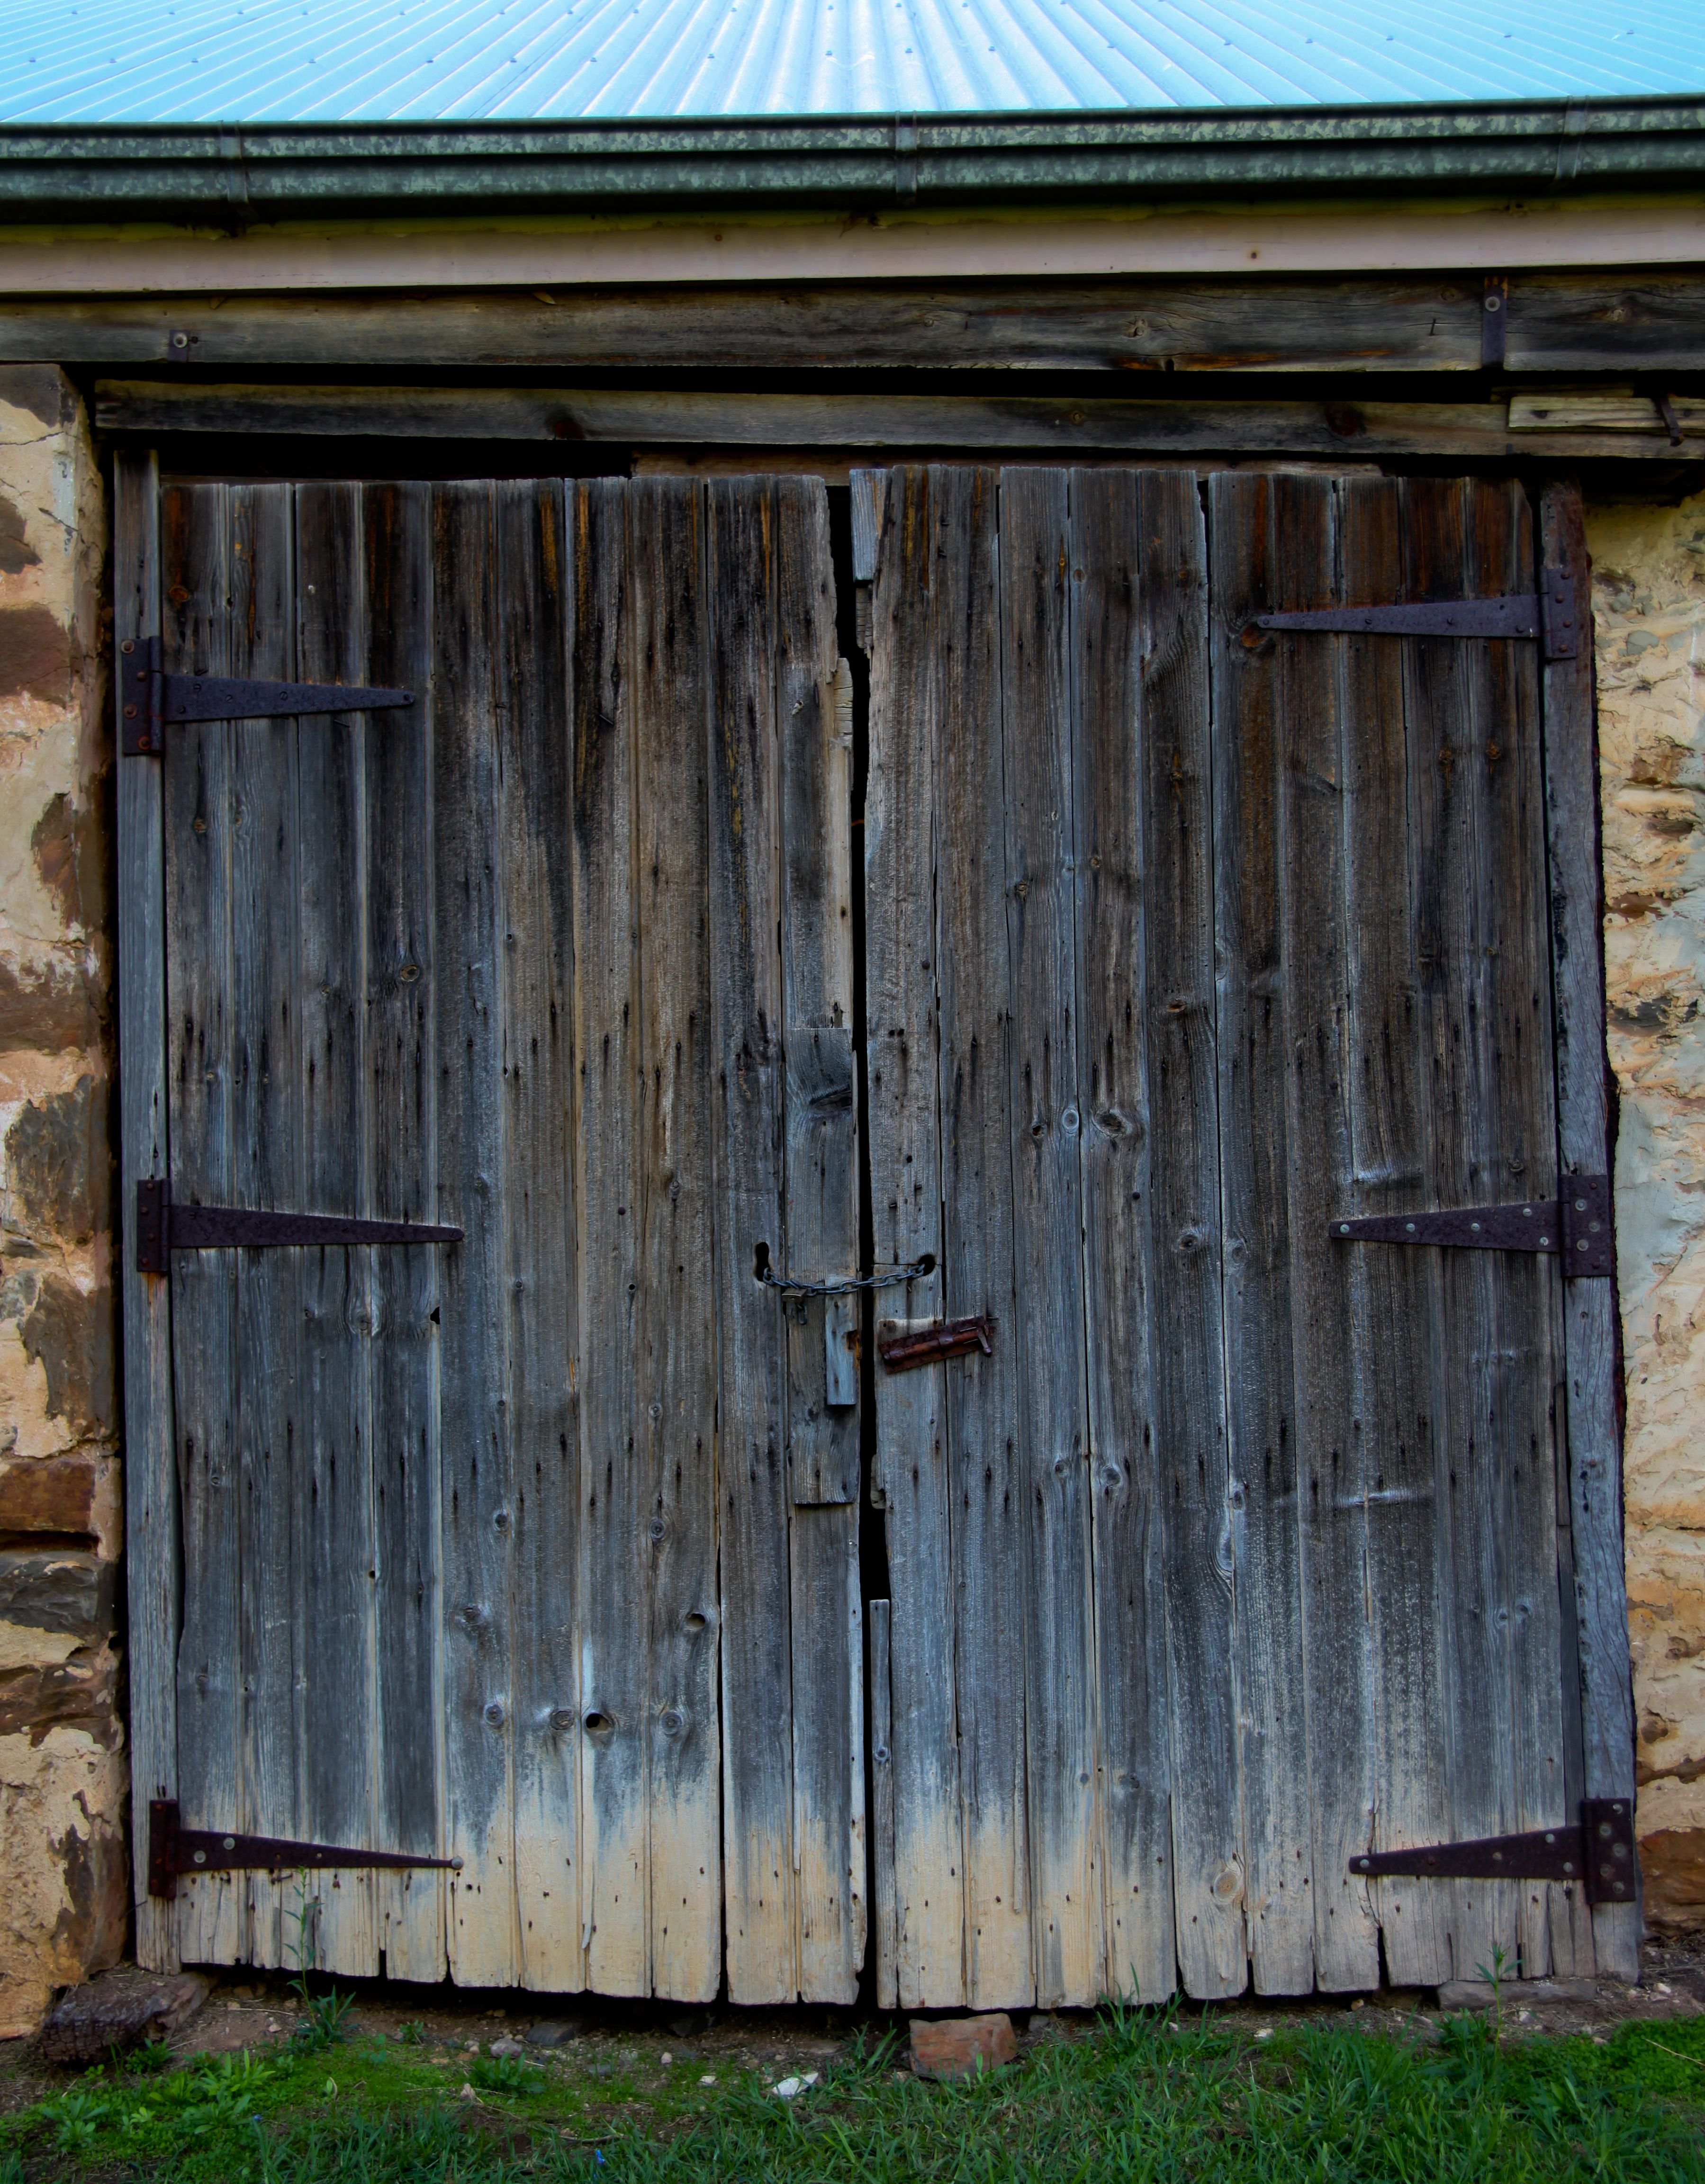 The Old Barn Doors At Glenbarr Homestead Strathalbyn Copyright Phd Photography All Rights Reserved